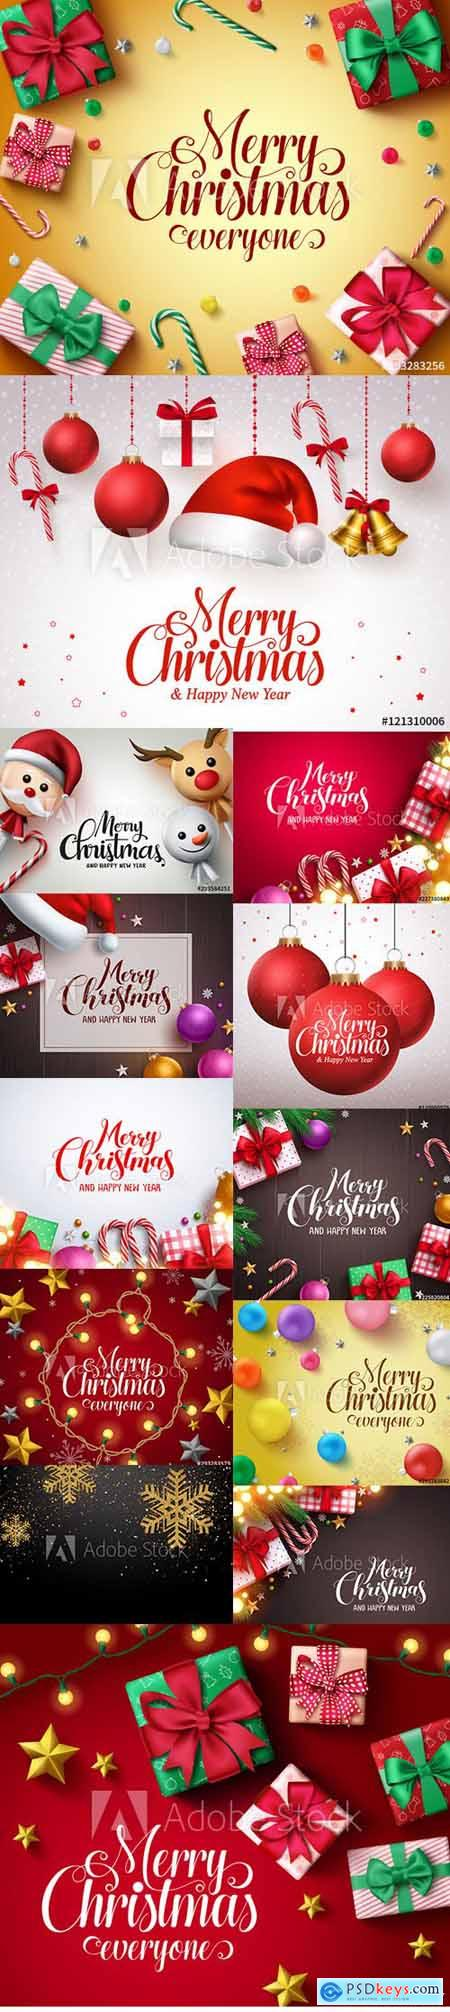 Vector Set - Merry Christmas and Happy New Year Backgrounds Template with Decor vol2